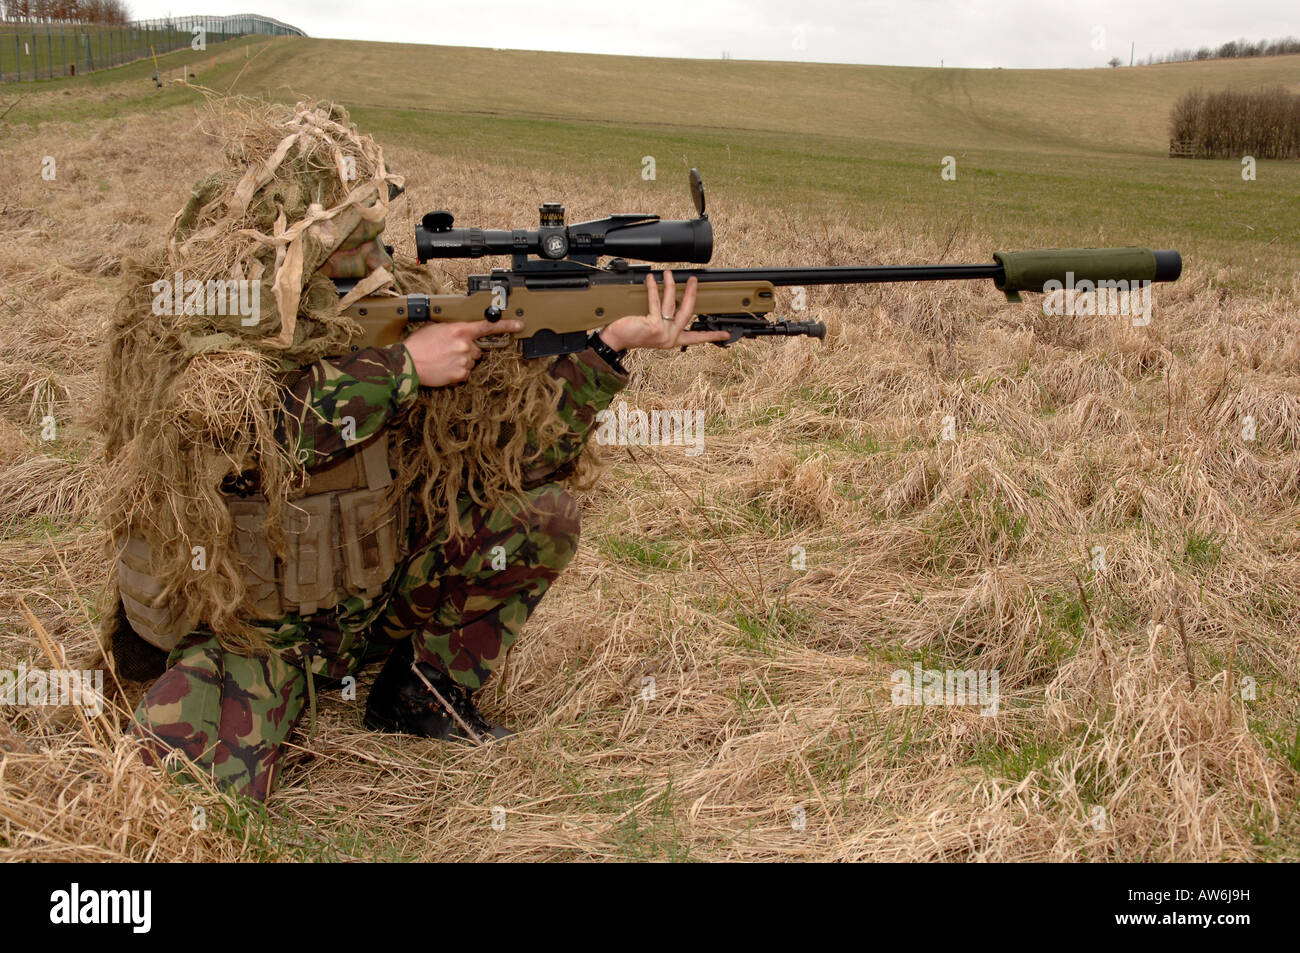 British Infantryman With A Long Range Sniper Rifle L115a3 Which Has A Stock Photo Alamy